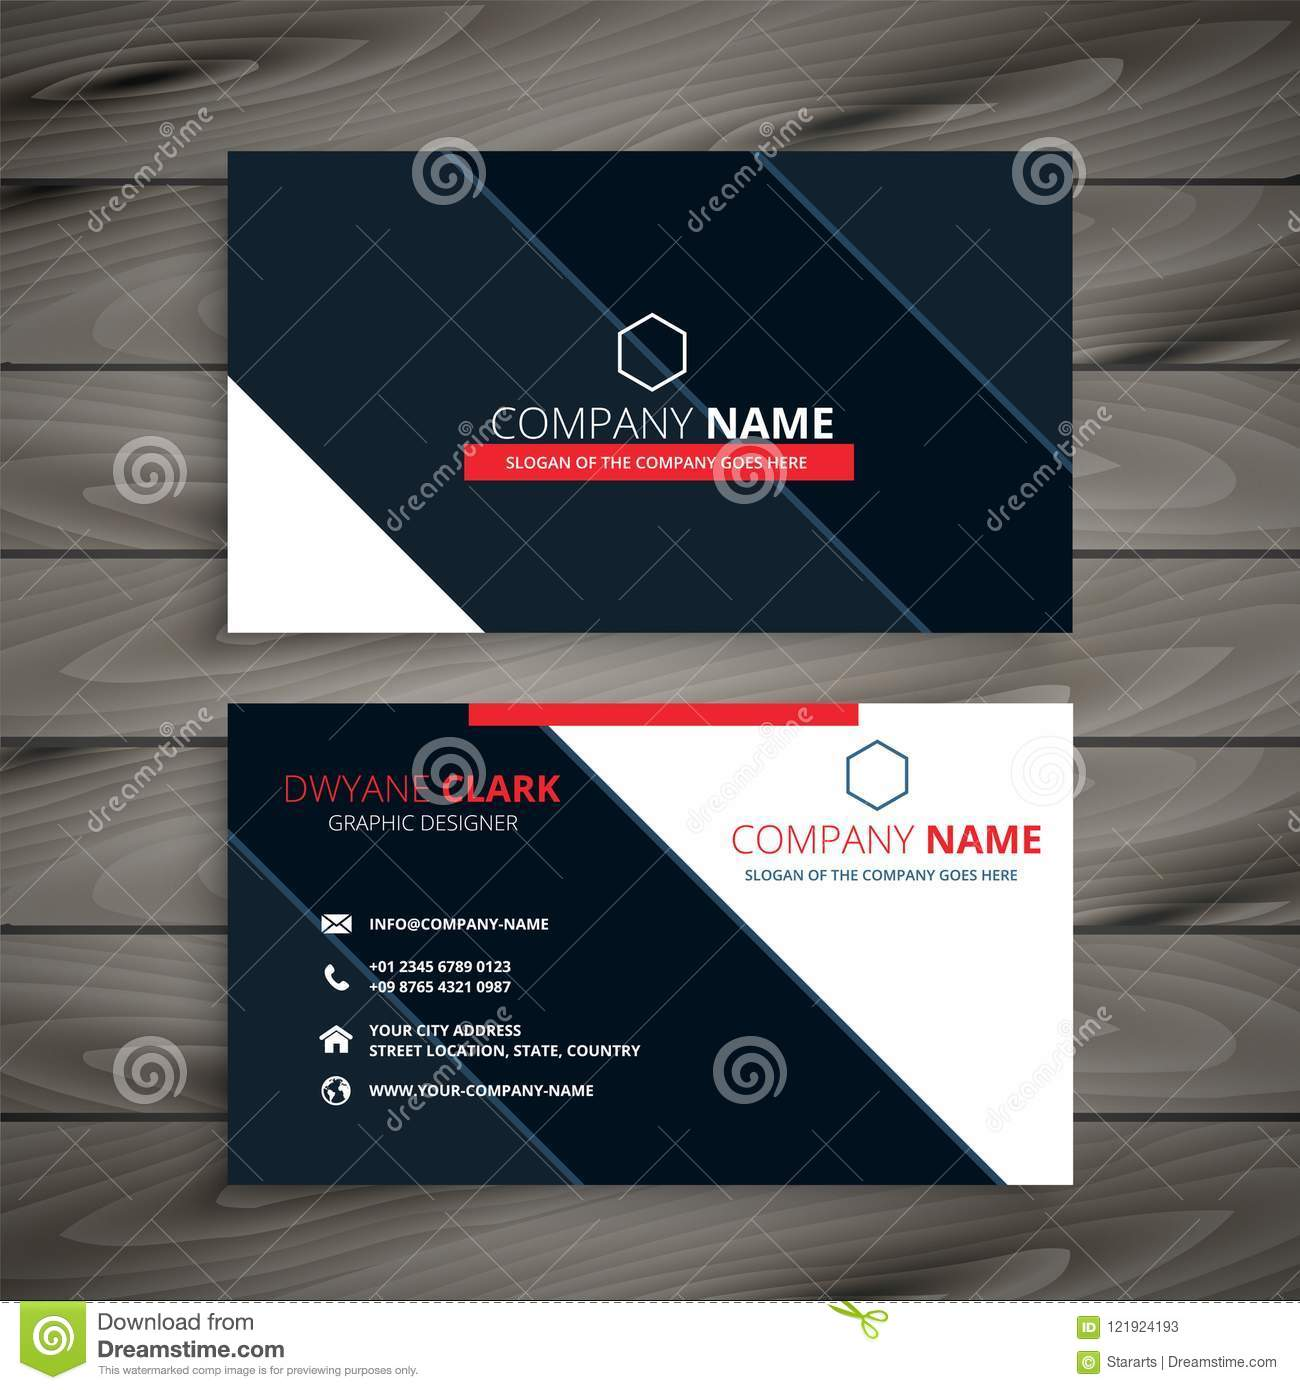 Modern business card design template stock vector illustration of modern business card design template fbccfo Image collections